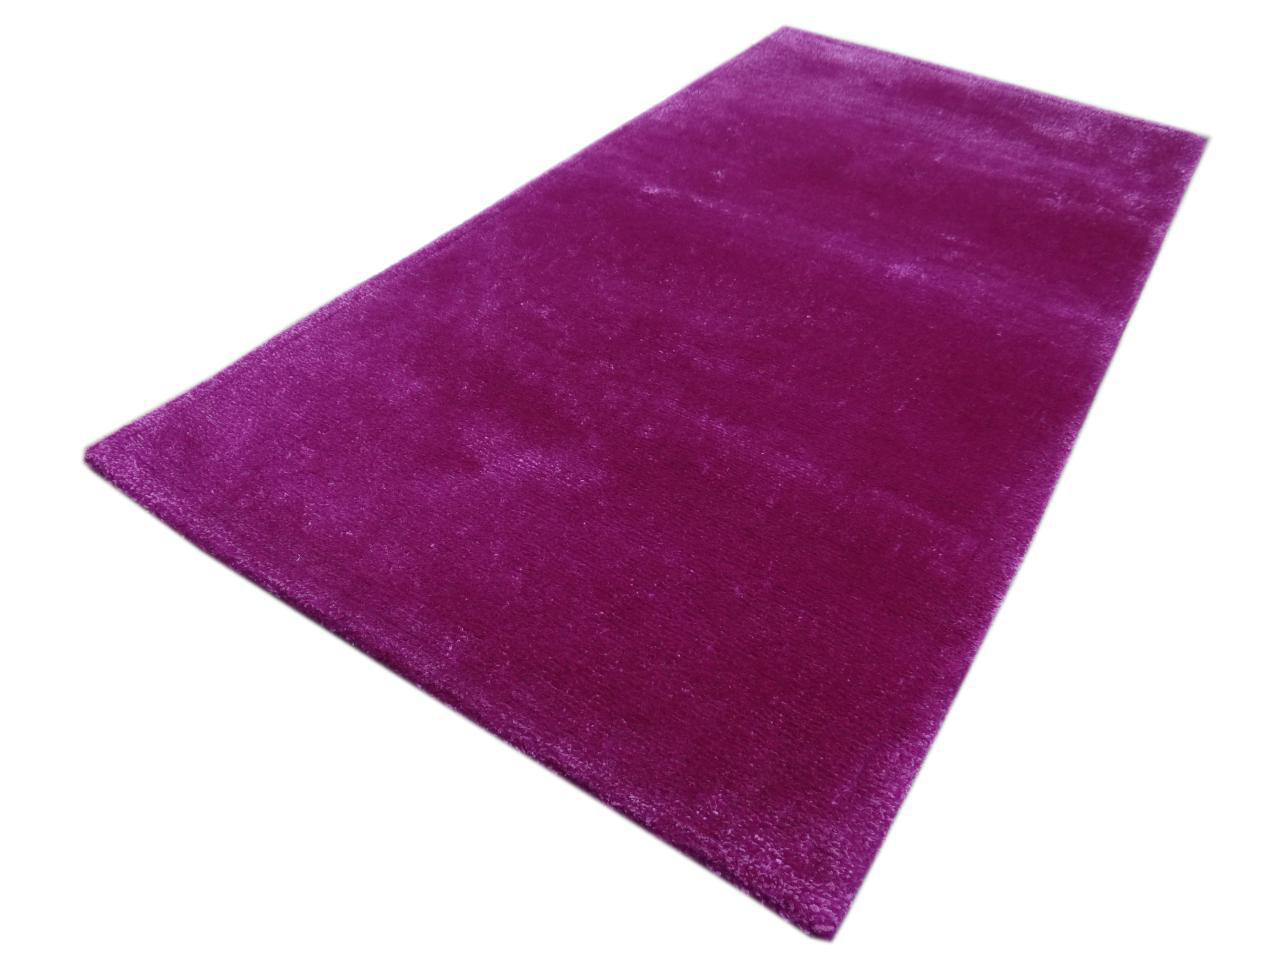 argente violet tapis unis n 33919 142x70cm. Black Bedroom Furniture Sets. Home Design Ideas